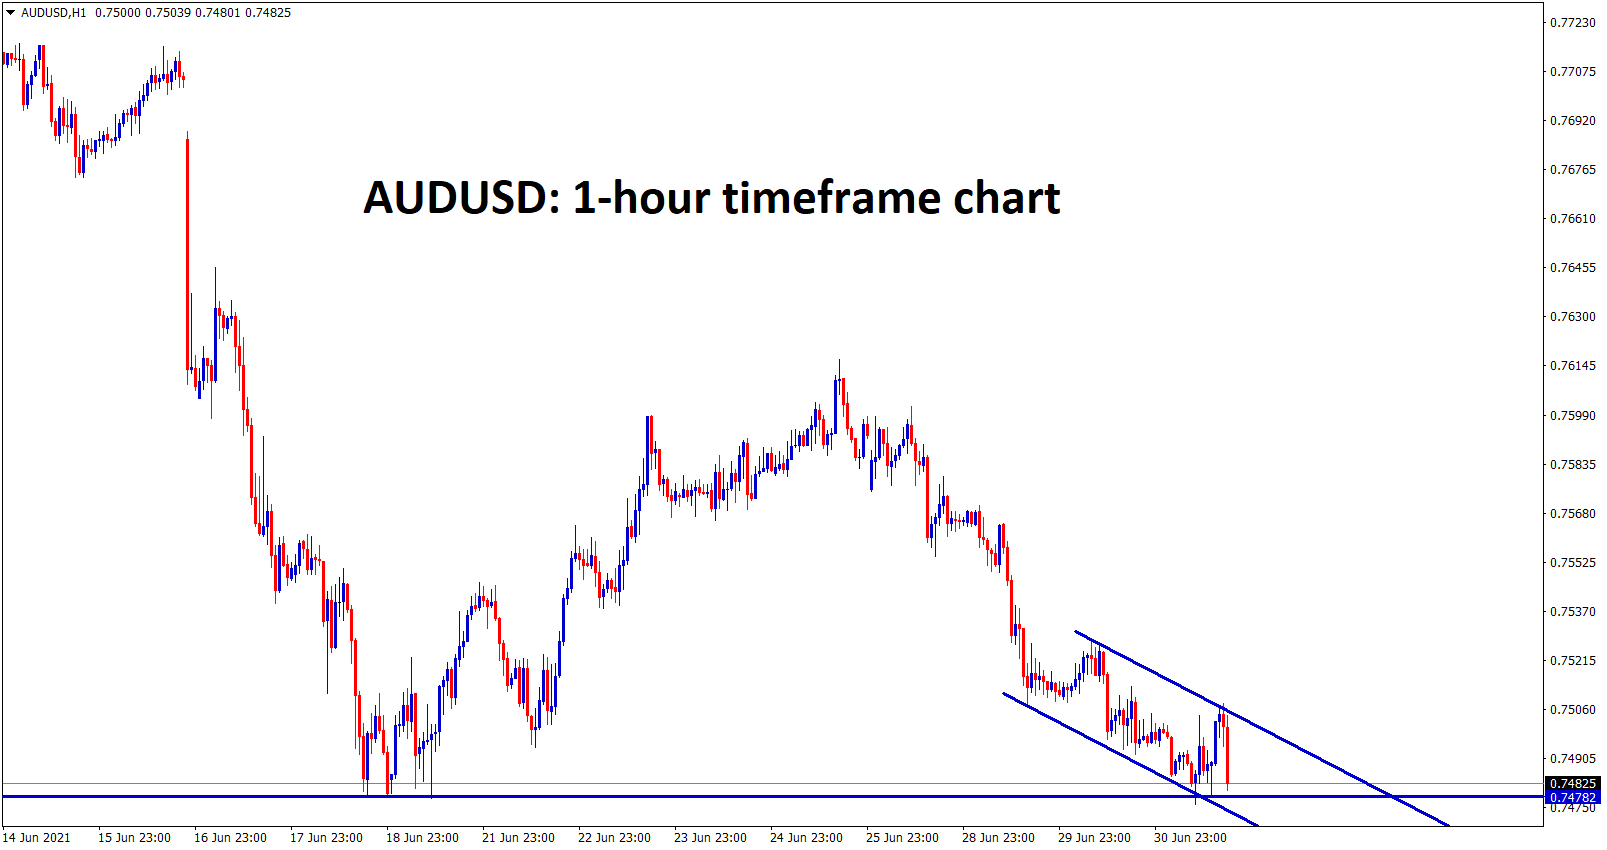 AUDUSD is standing at the support zone and moving in a descending channel